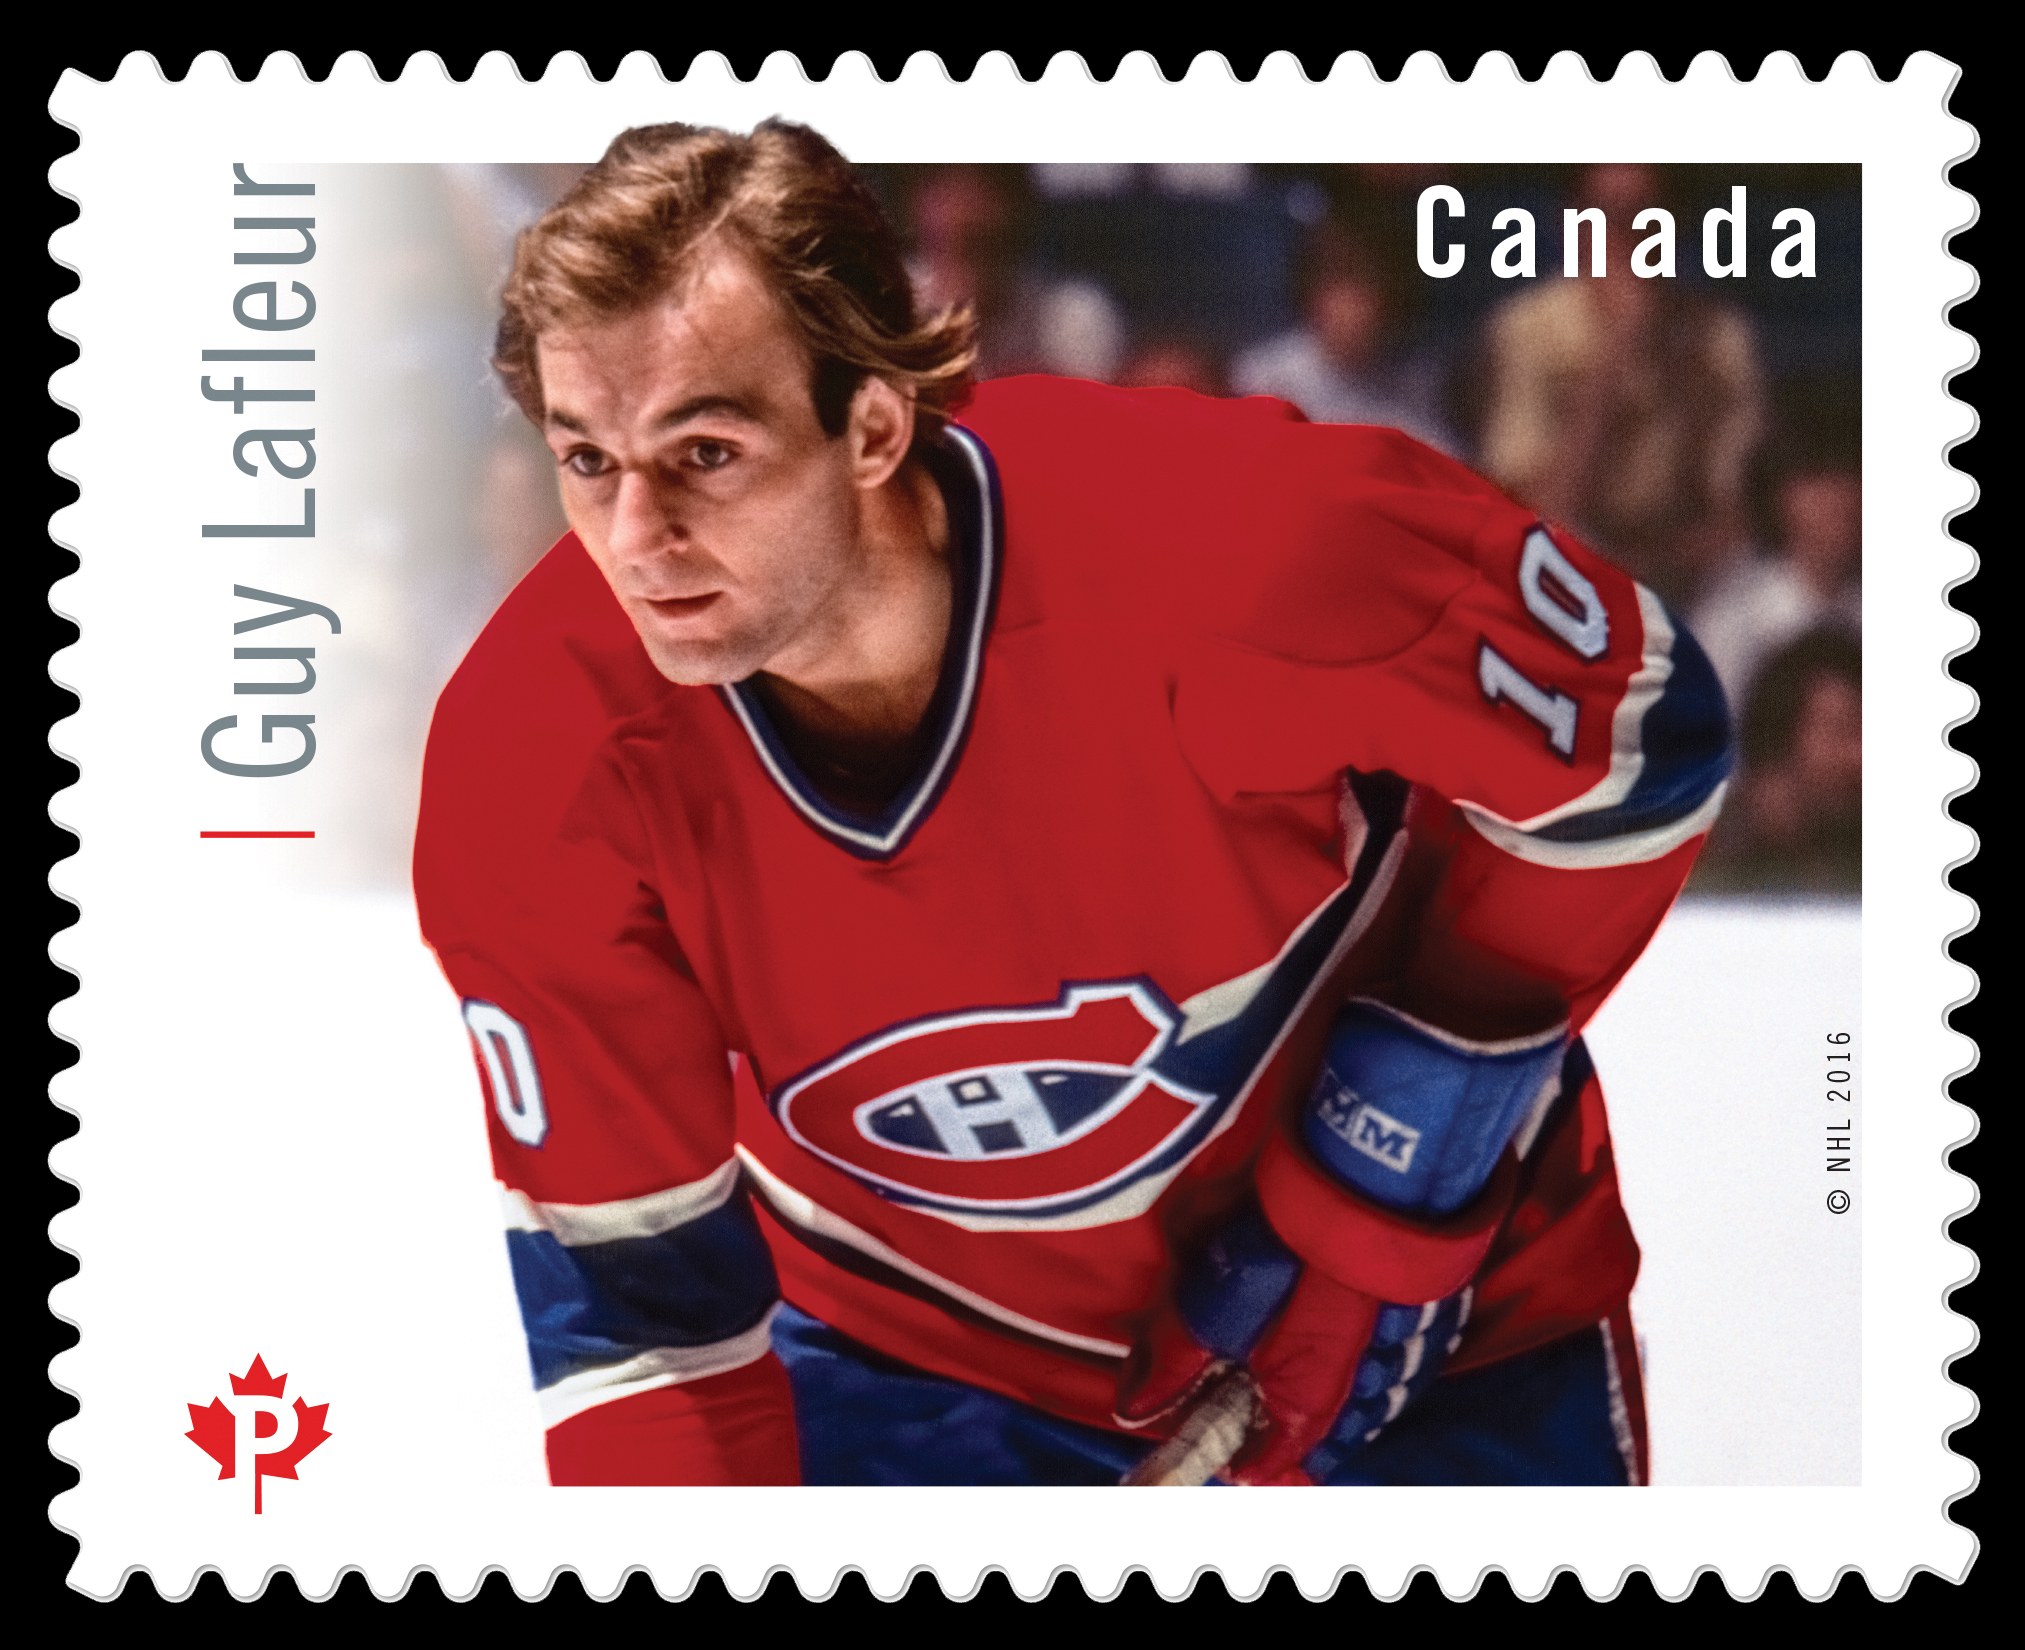 Guy Lafleur Canada Postage Stamp | Great Canadian NHL Hockey Forwards